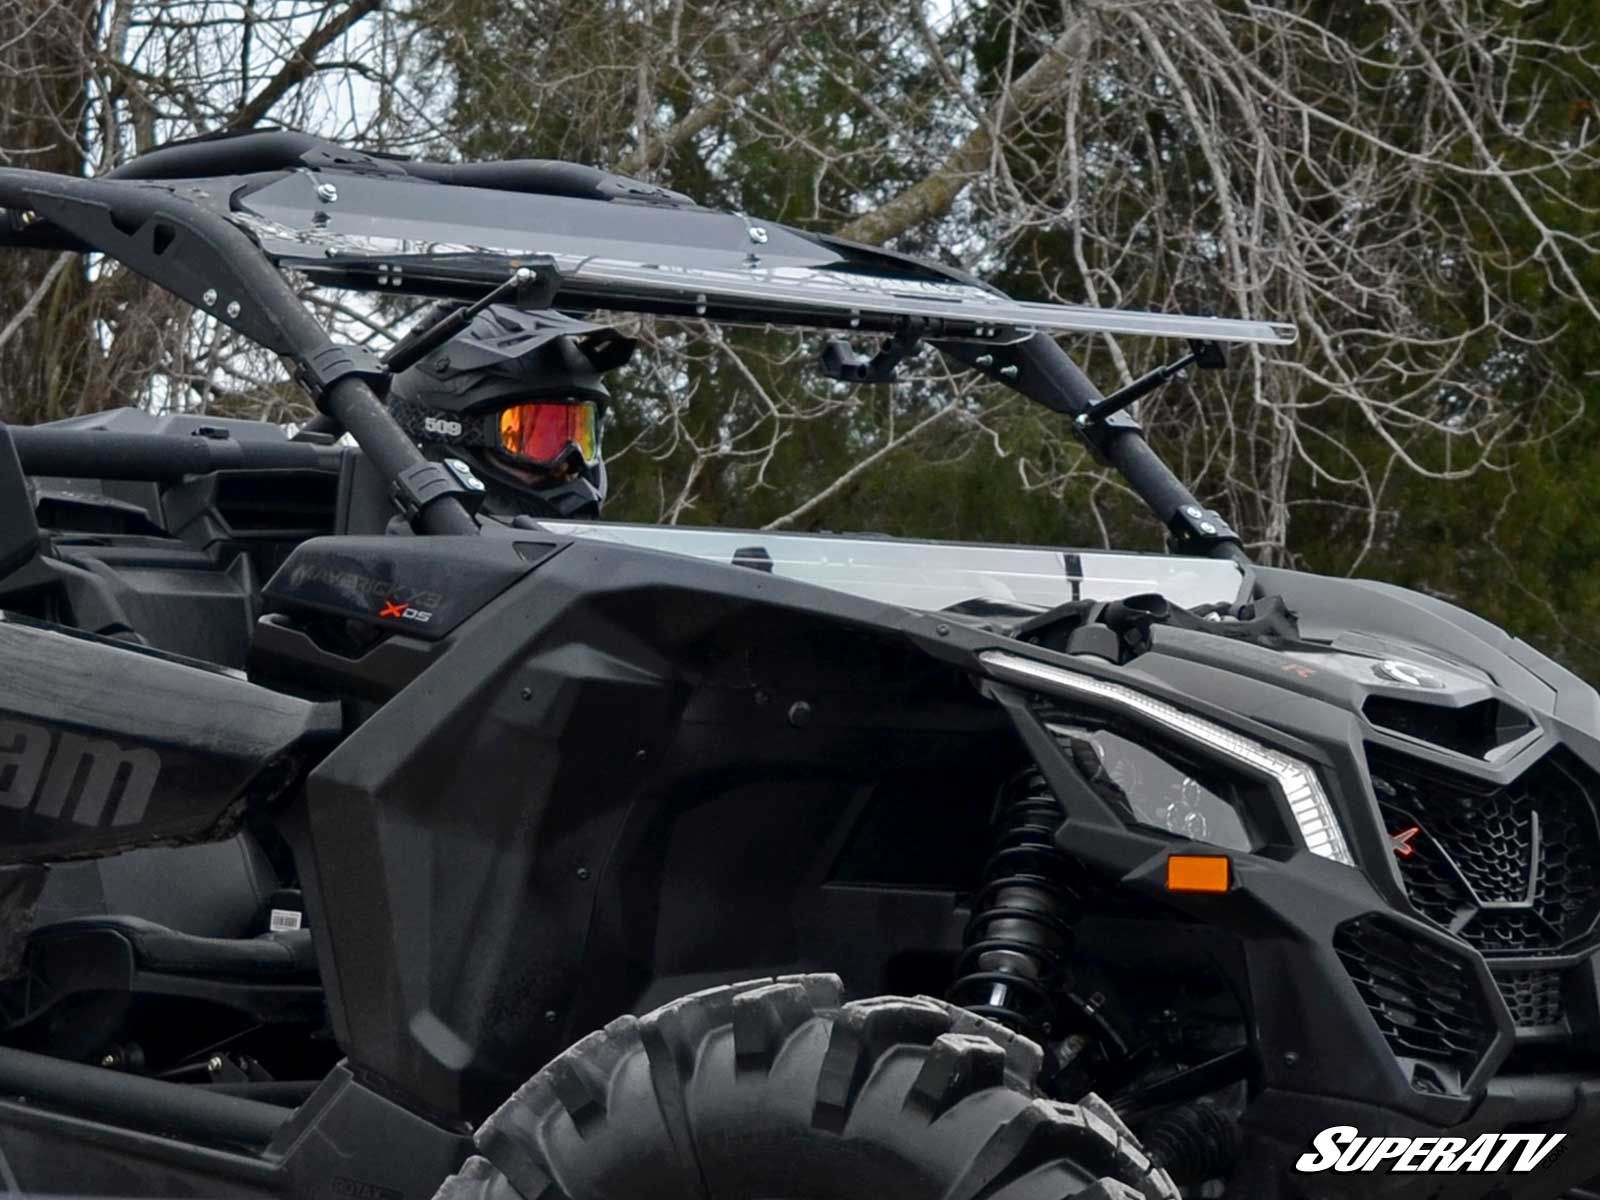 Super Atv Can Am Maverick X3 Scratch Resistant Flip Windshield